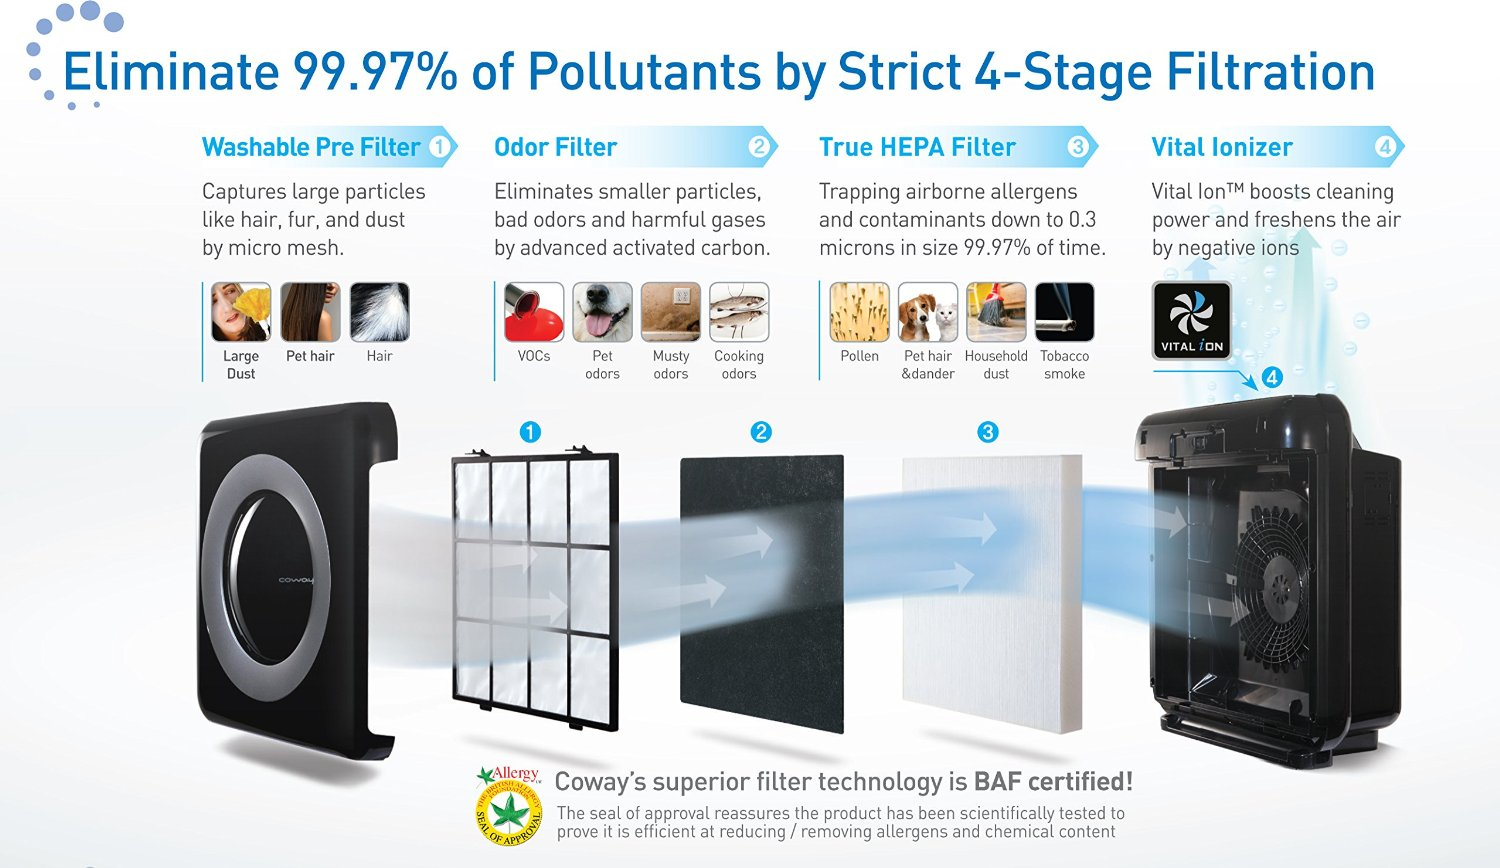 Best Air Purifiers for Mold Spores and Mildew - #3 Coway AP-1512HH Mighty Air Purifier - 4 Stage Filtration Process Infographic